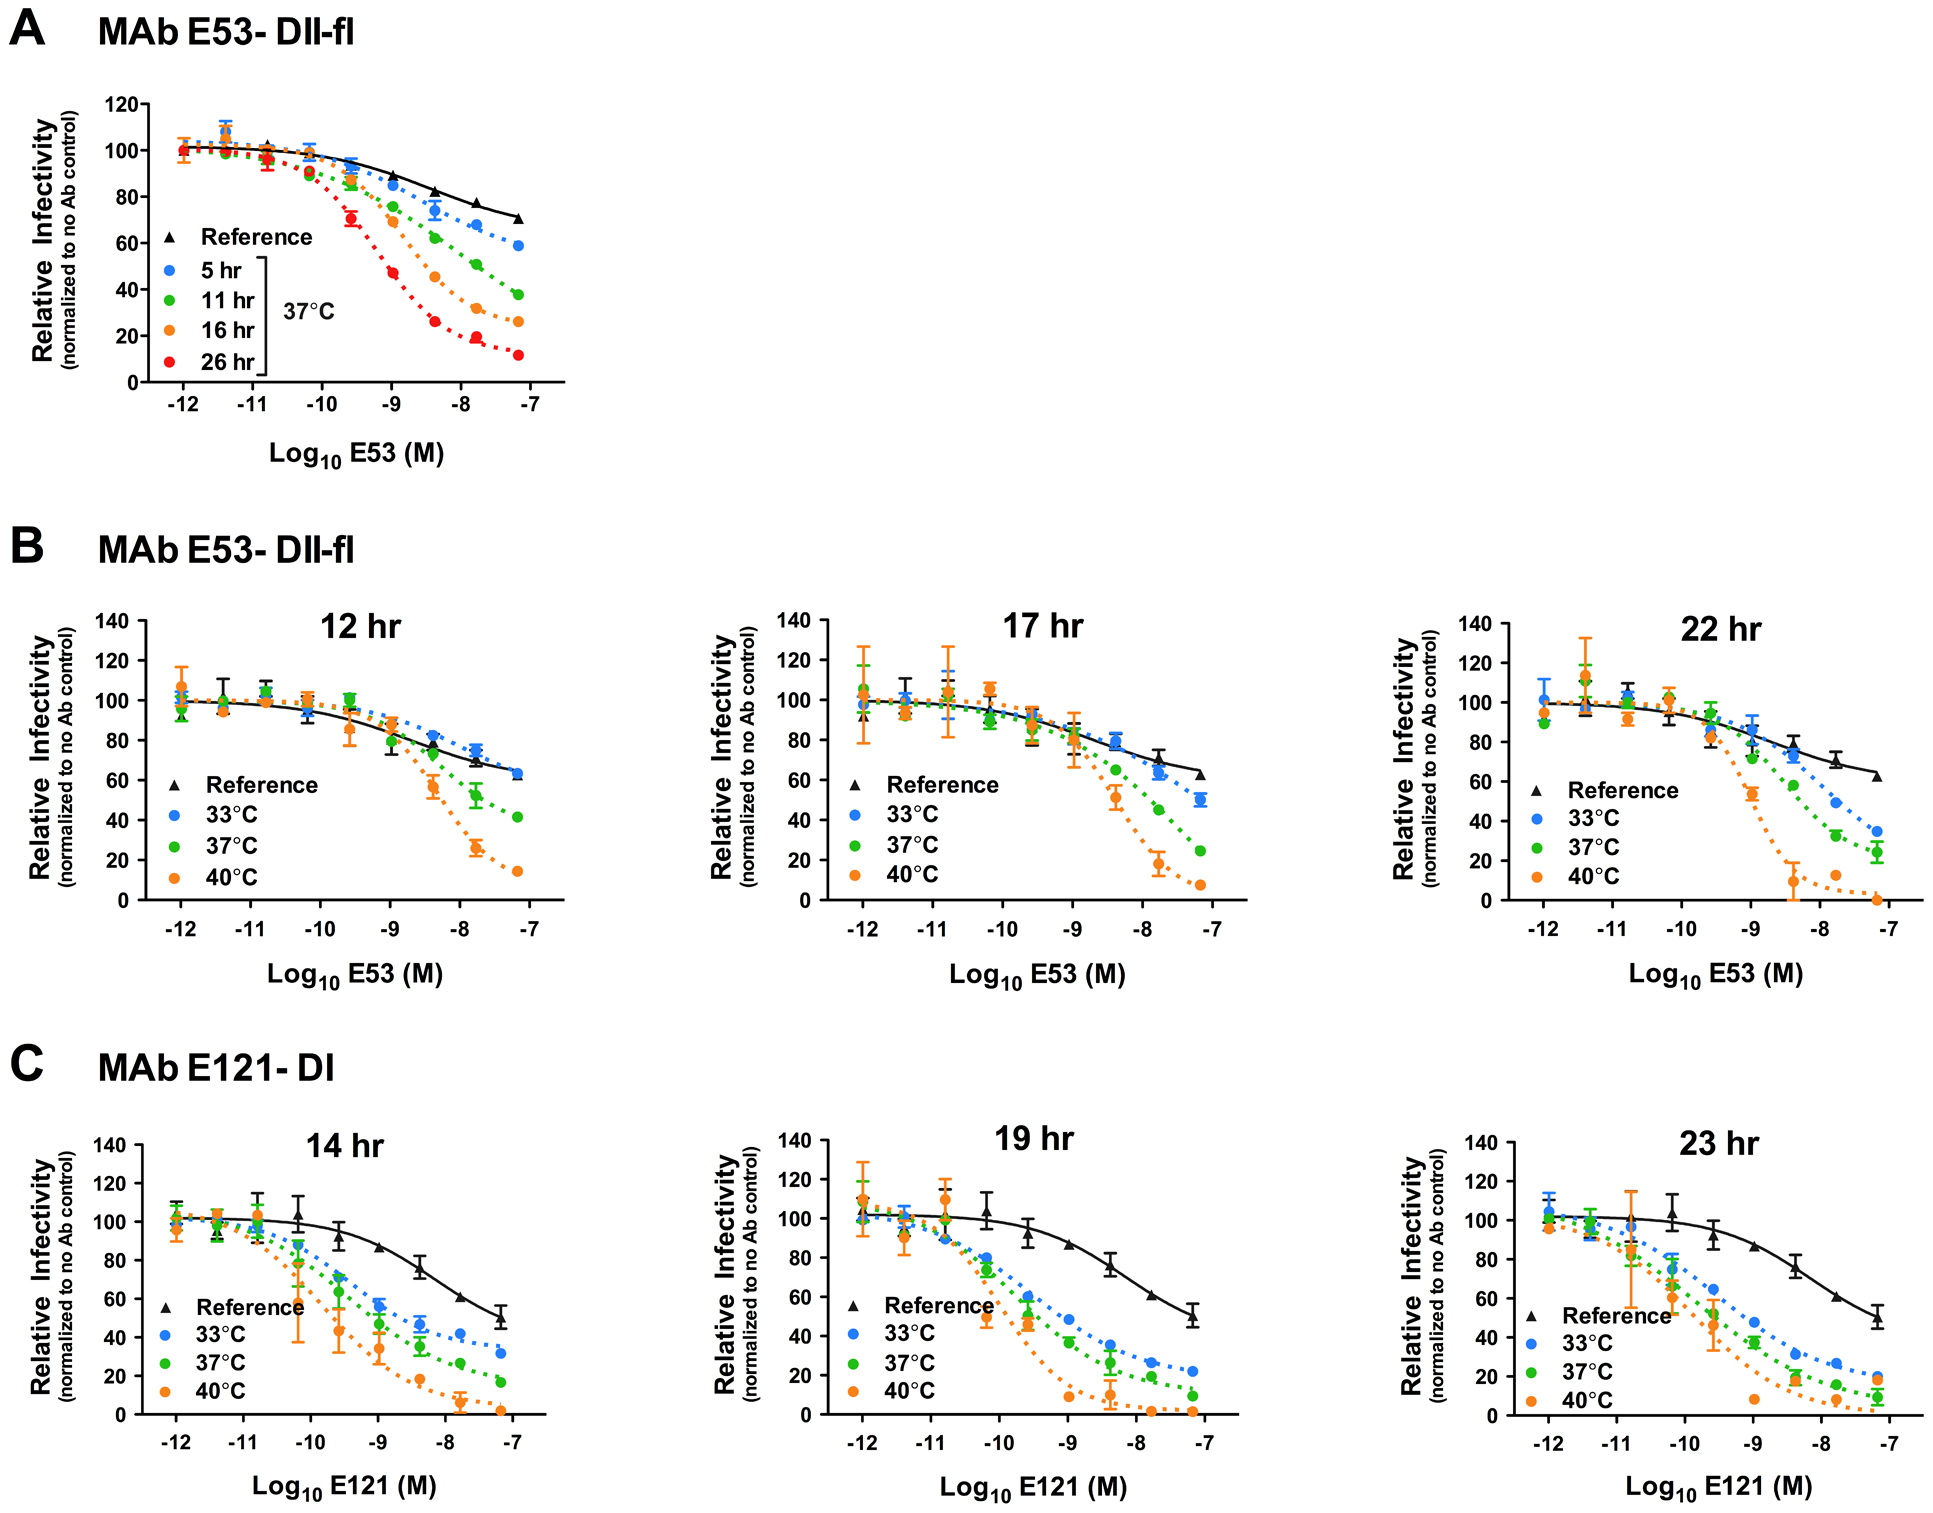 Time- and temperature-dependent increases in neutralization by antibodies that bind cryptic determinants on the mature virion.